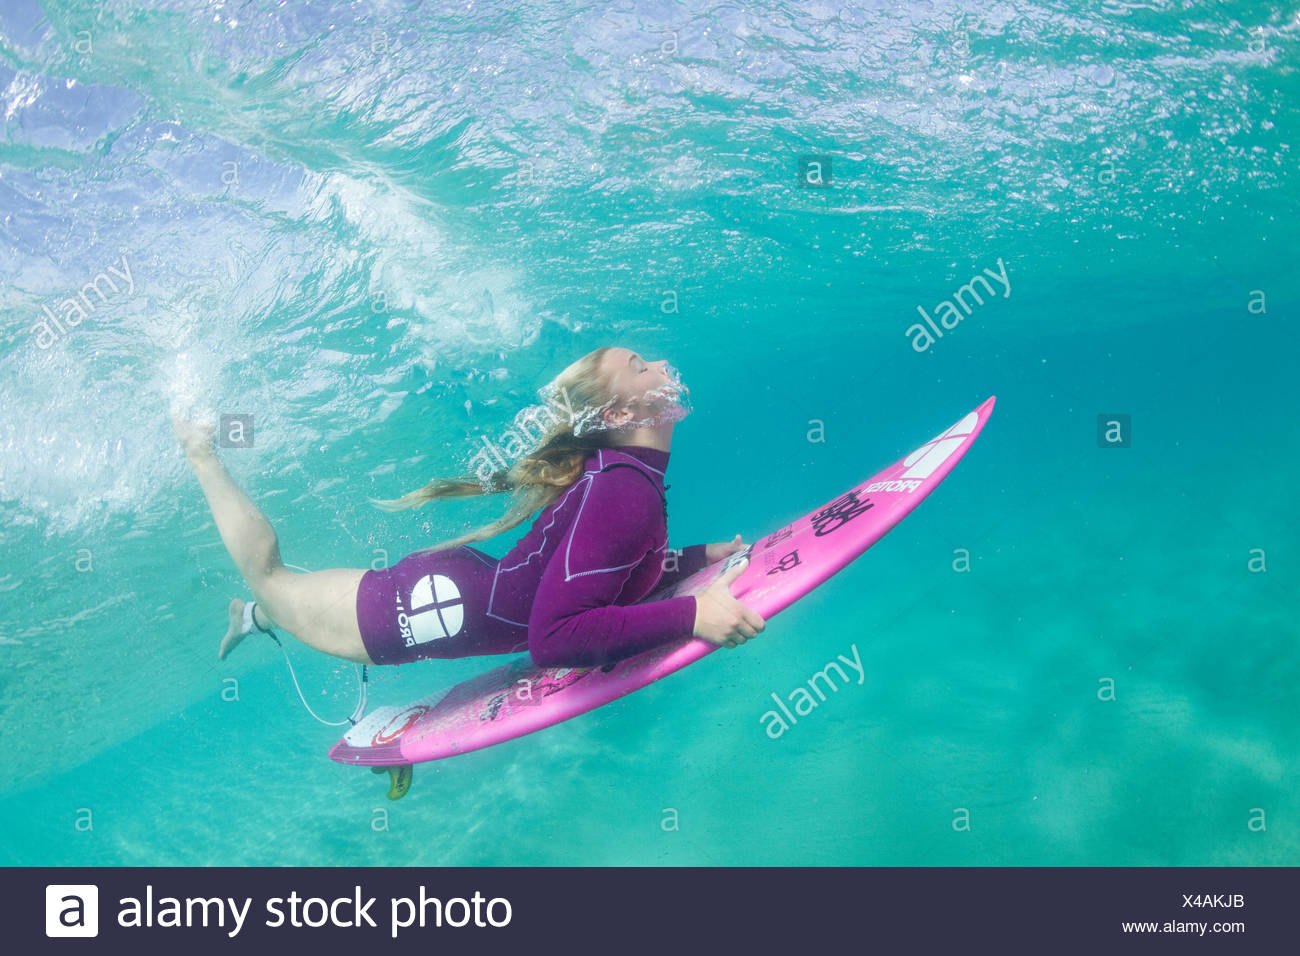 Underwater photo of a blonde surfer girl with a short wetsuit duck diving under a wave Stock Photo